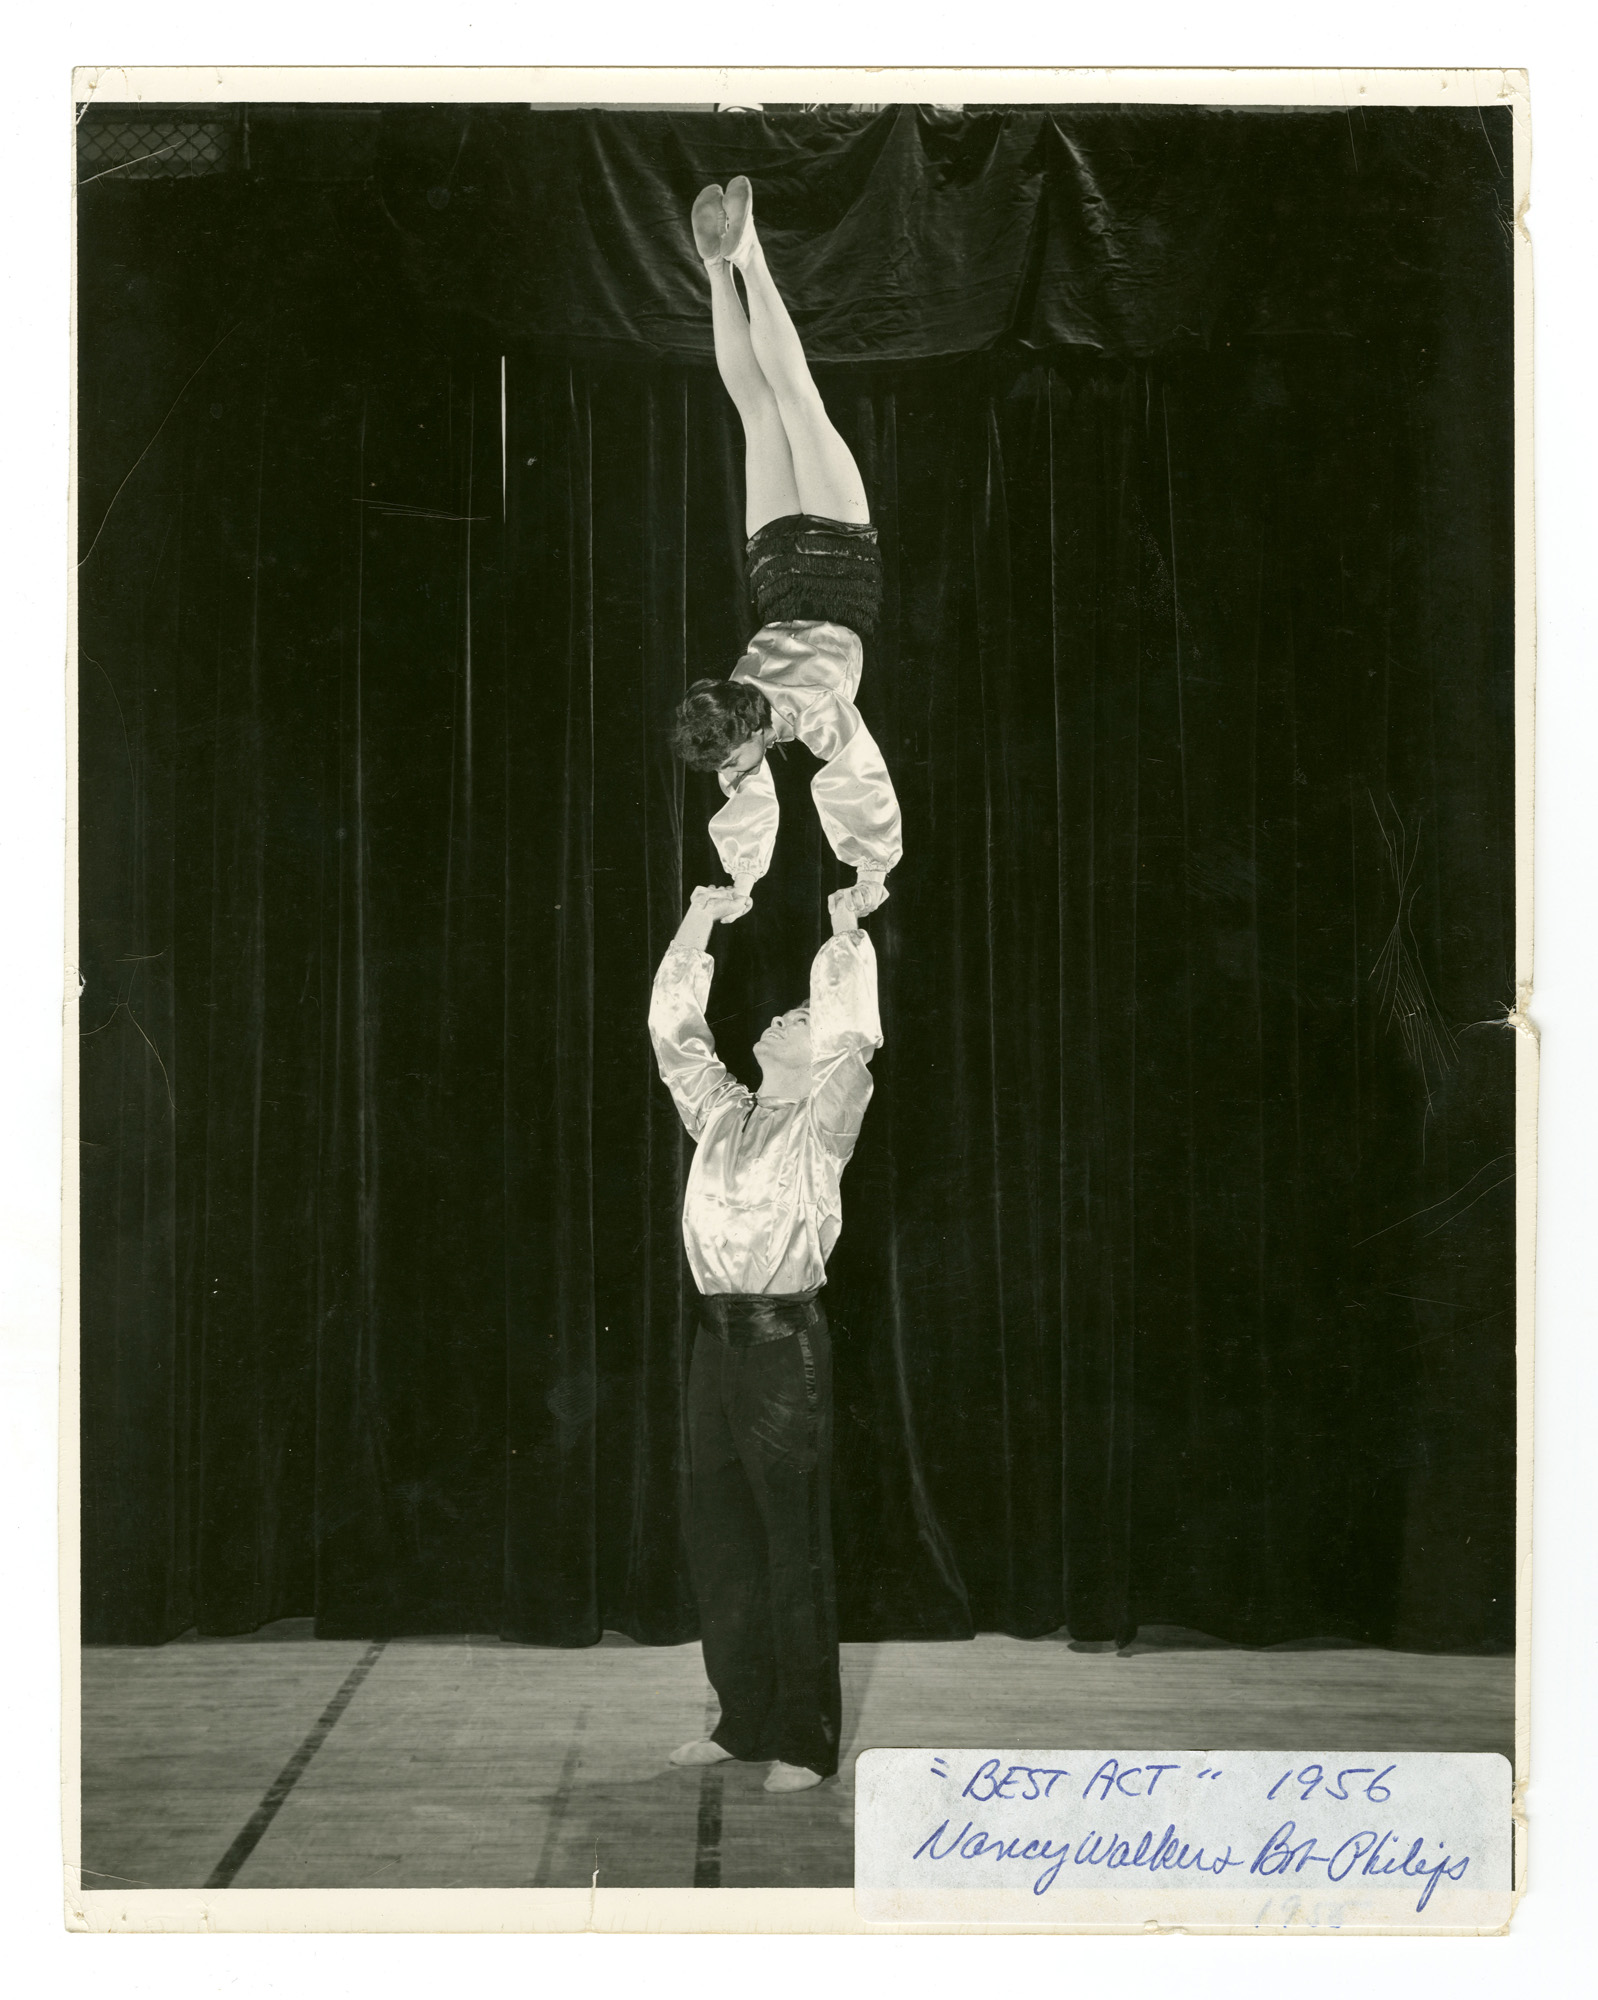 """1956 - """"The Twilighters"""" Mixed Doubles Balancing"""